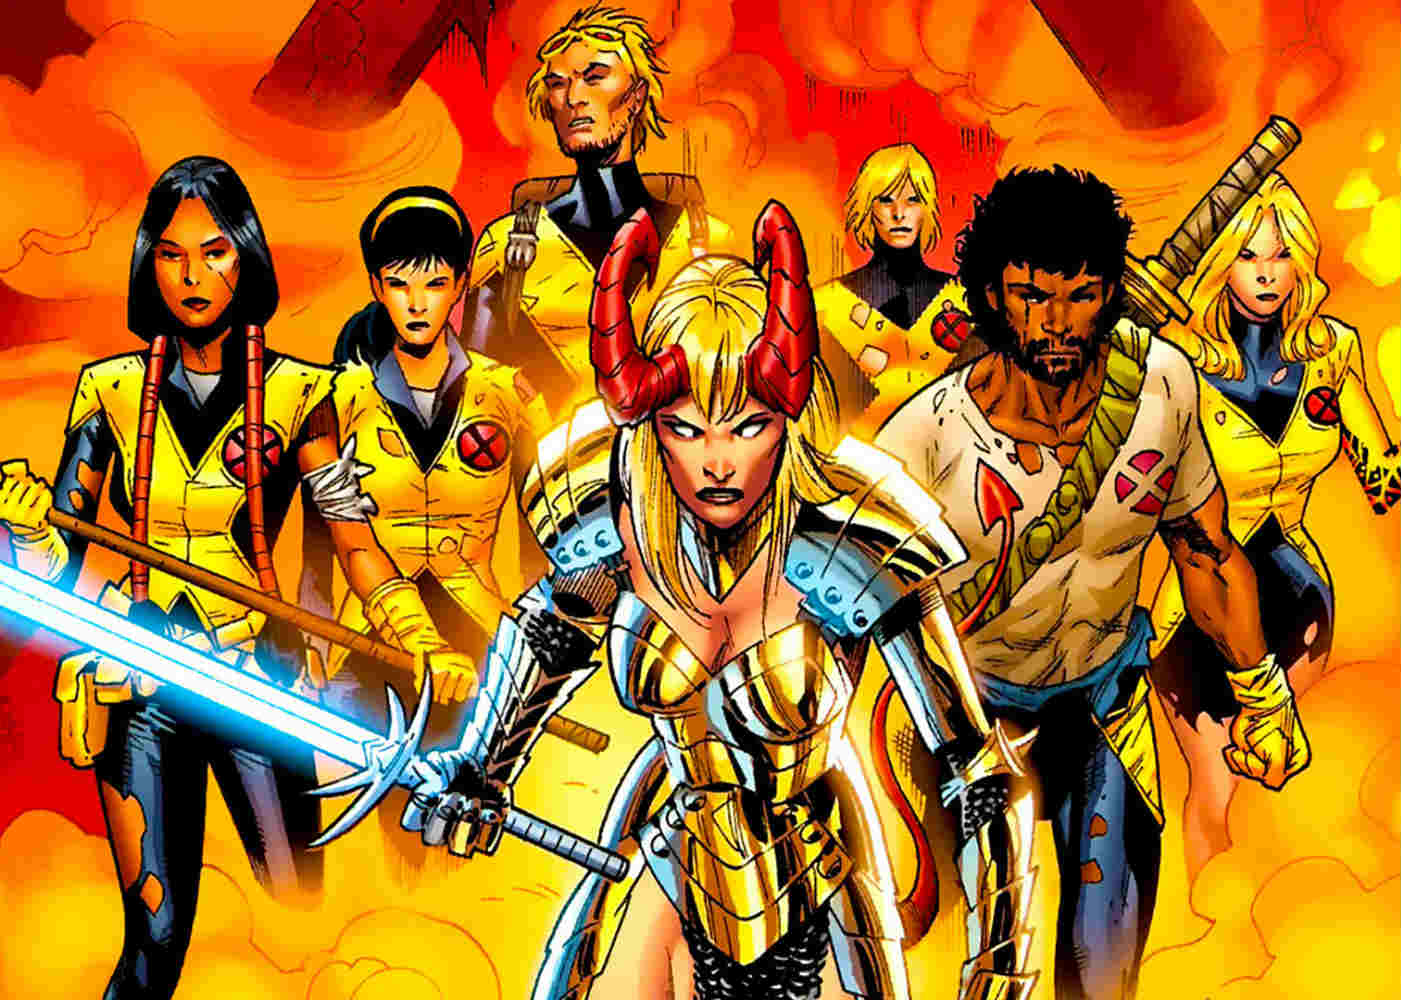 X-Men Spinoff, New Mutants, casts Anya Taylor-Joy and Maisie Williams